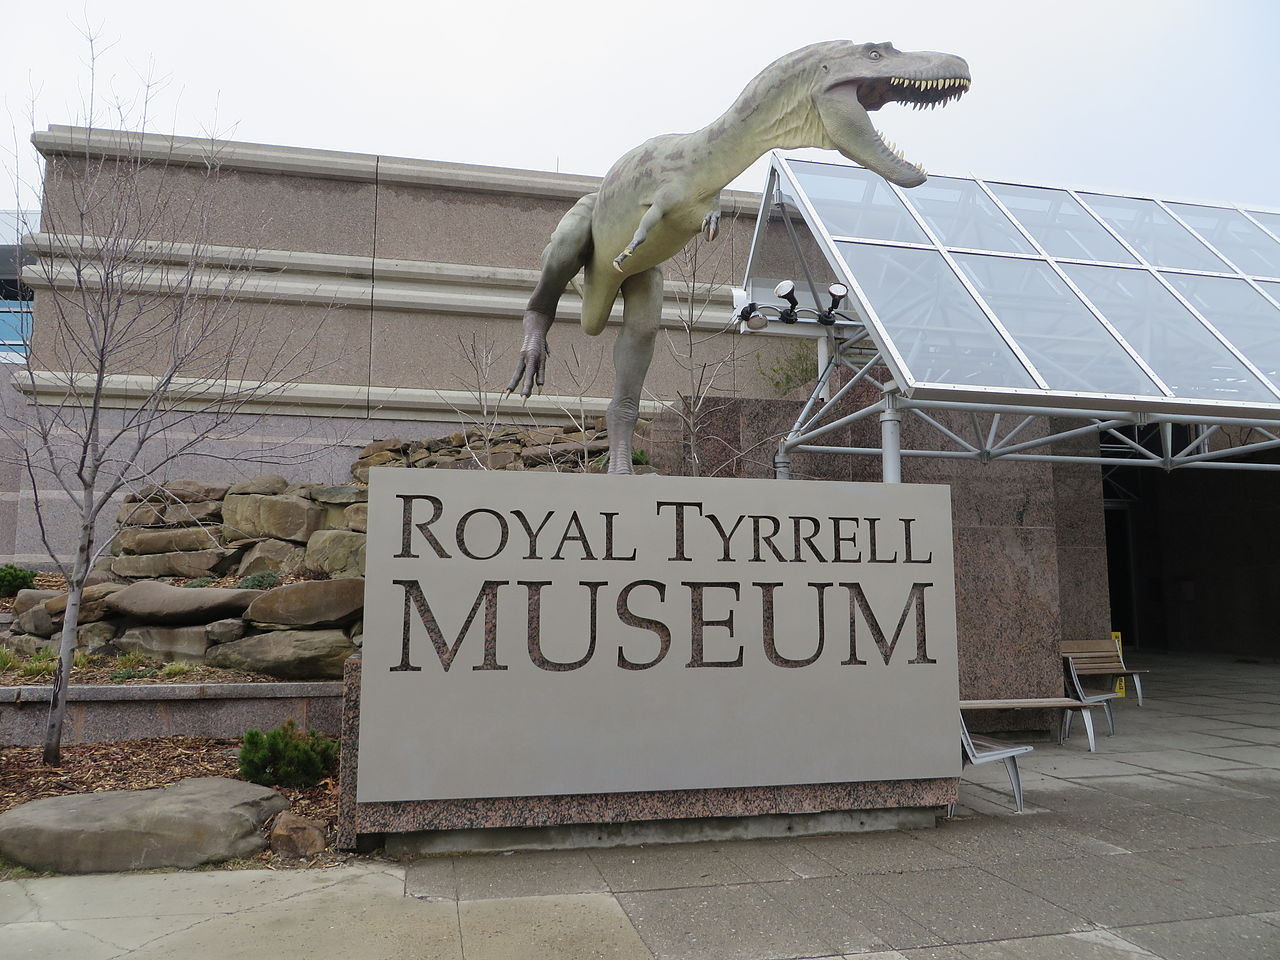 The Royal Tyrrell Museum (Image)